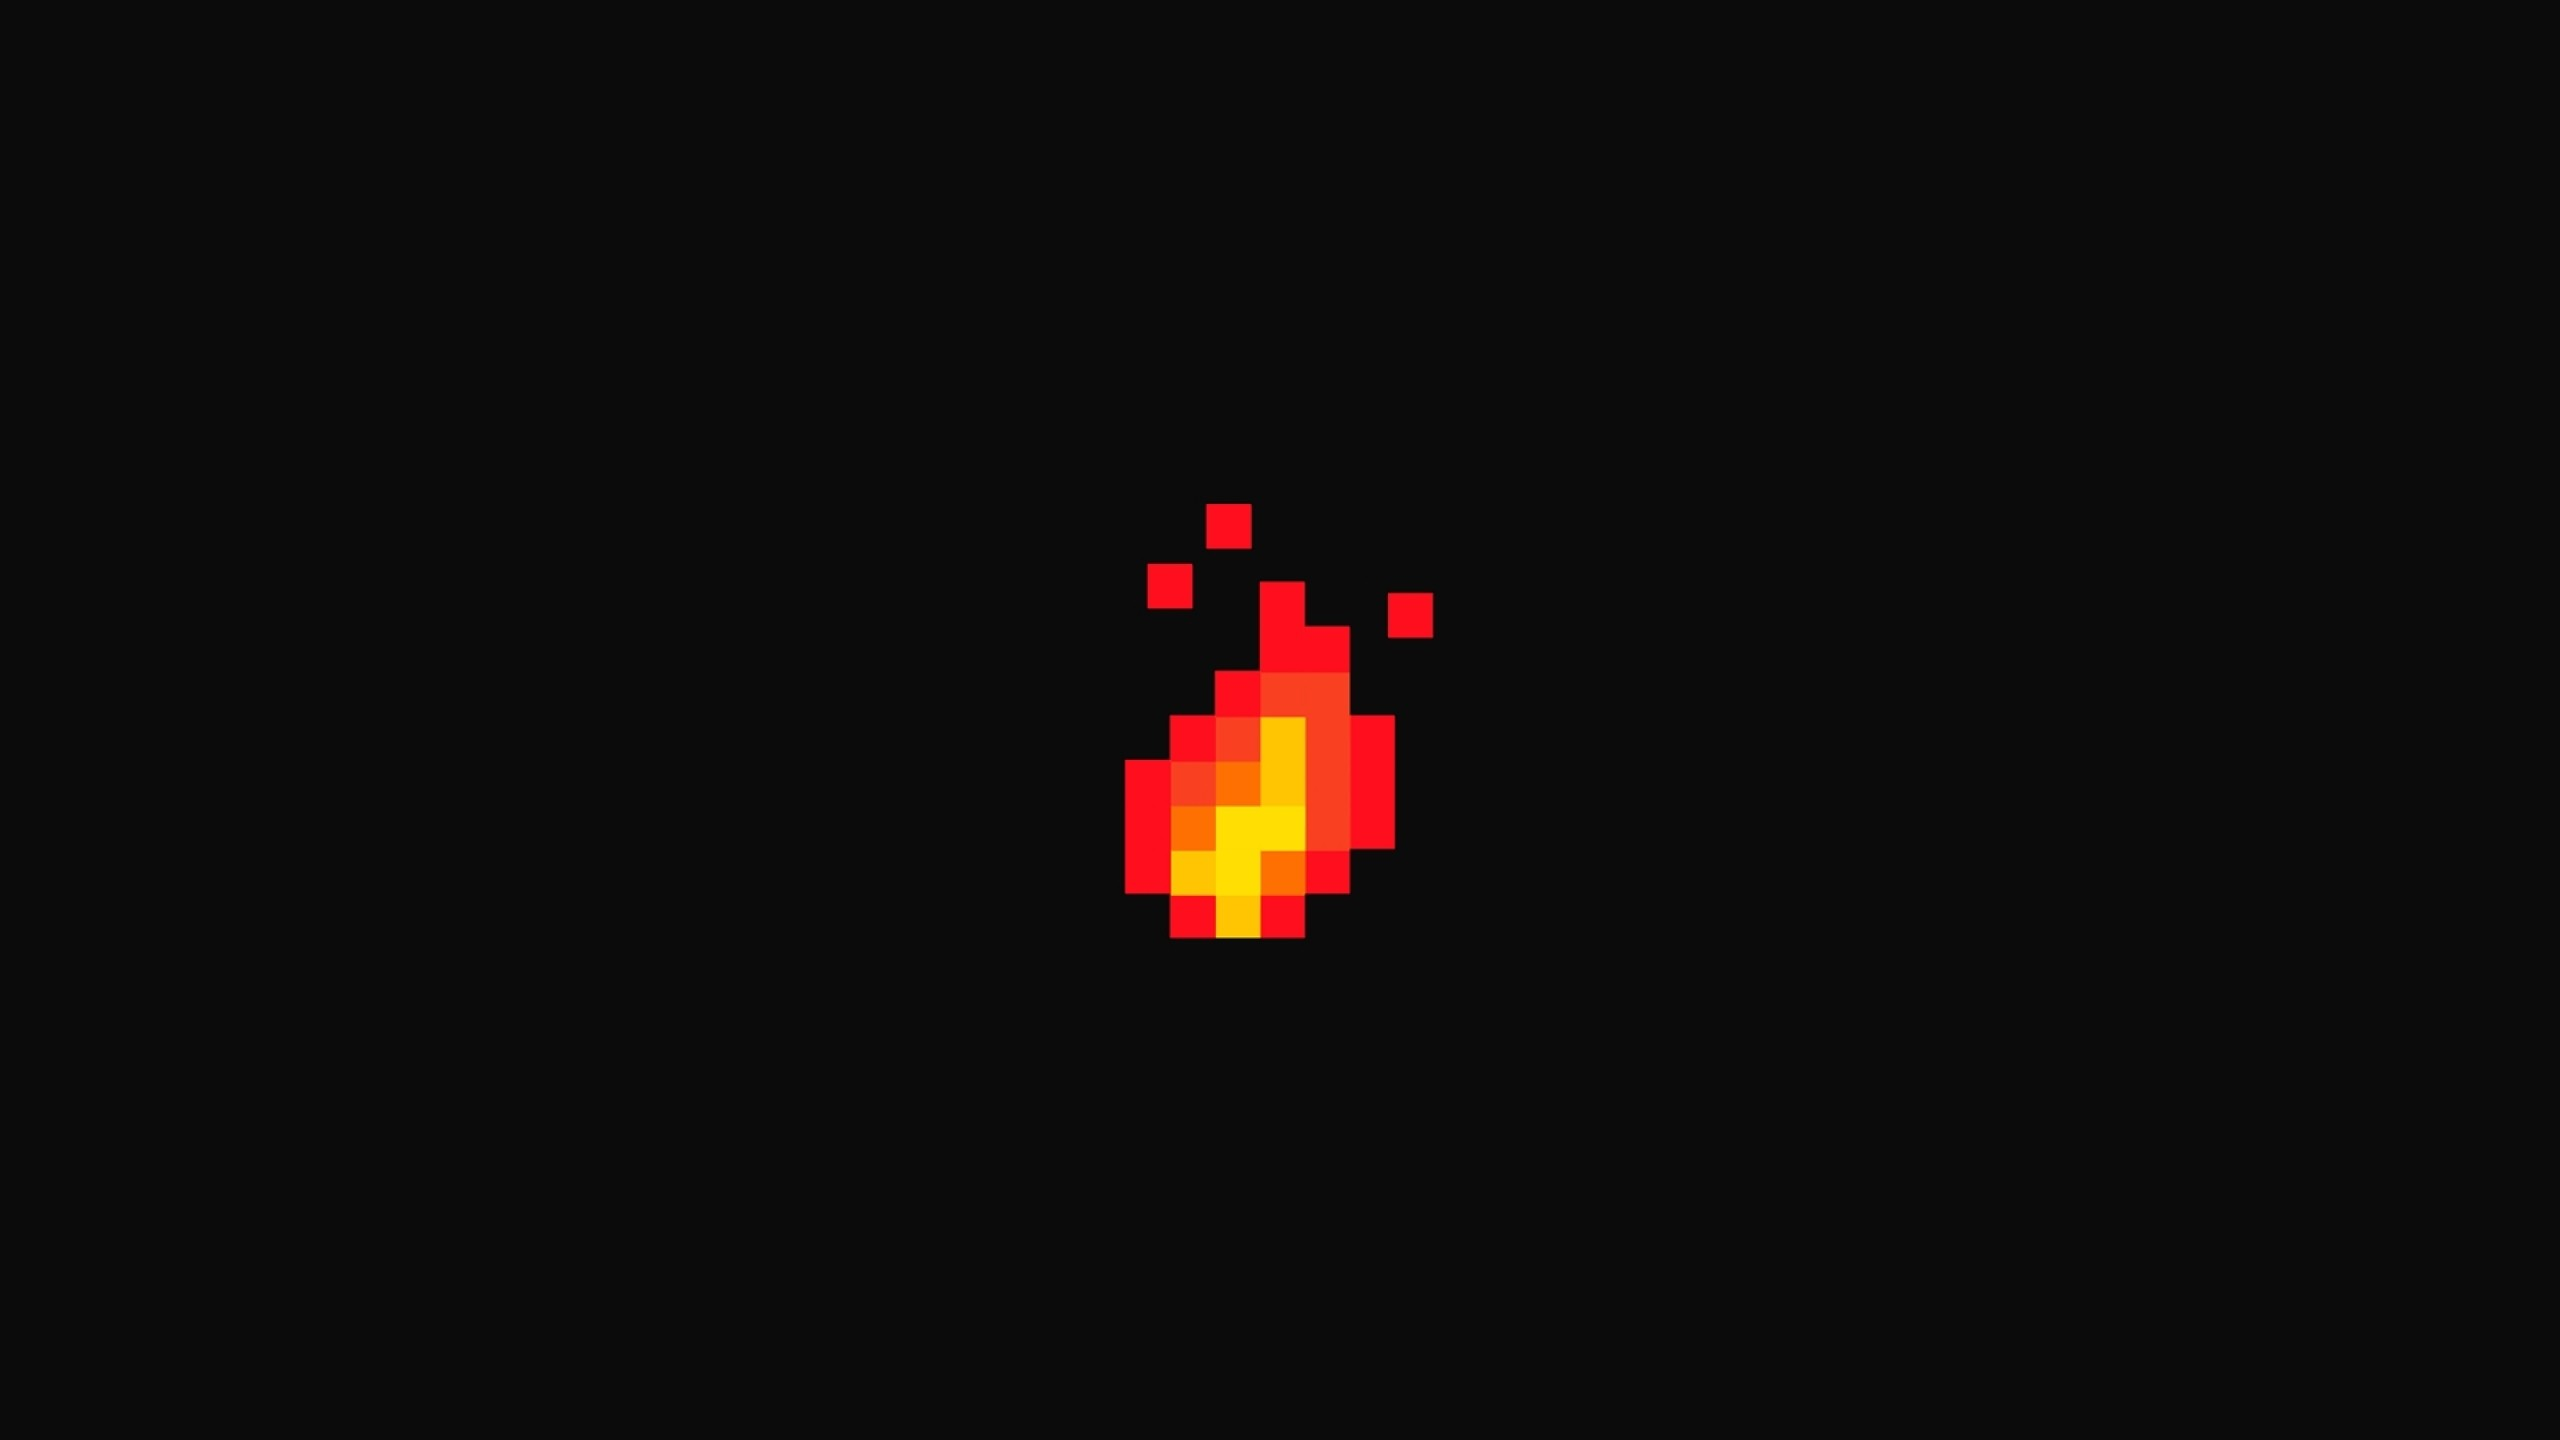 Fire Pixel Art Hd Artist 4k Wallpapers Images Backgrounds